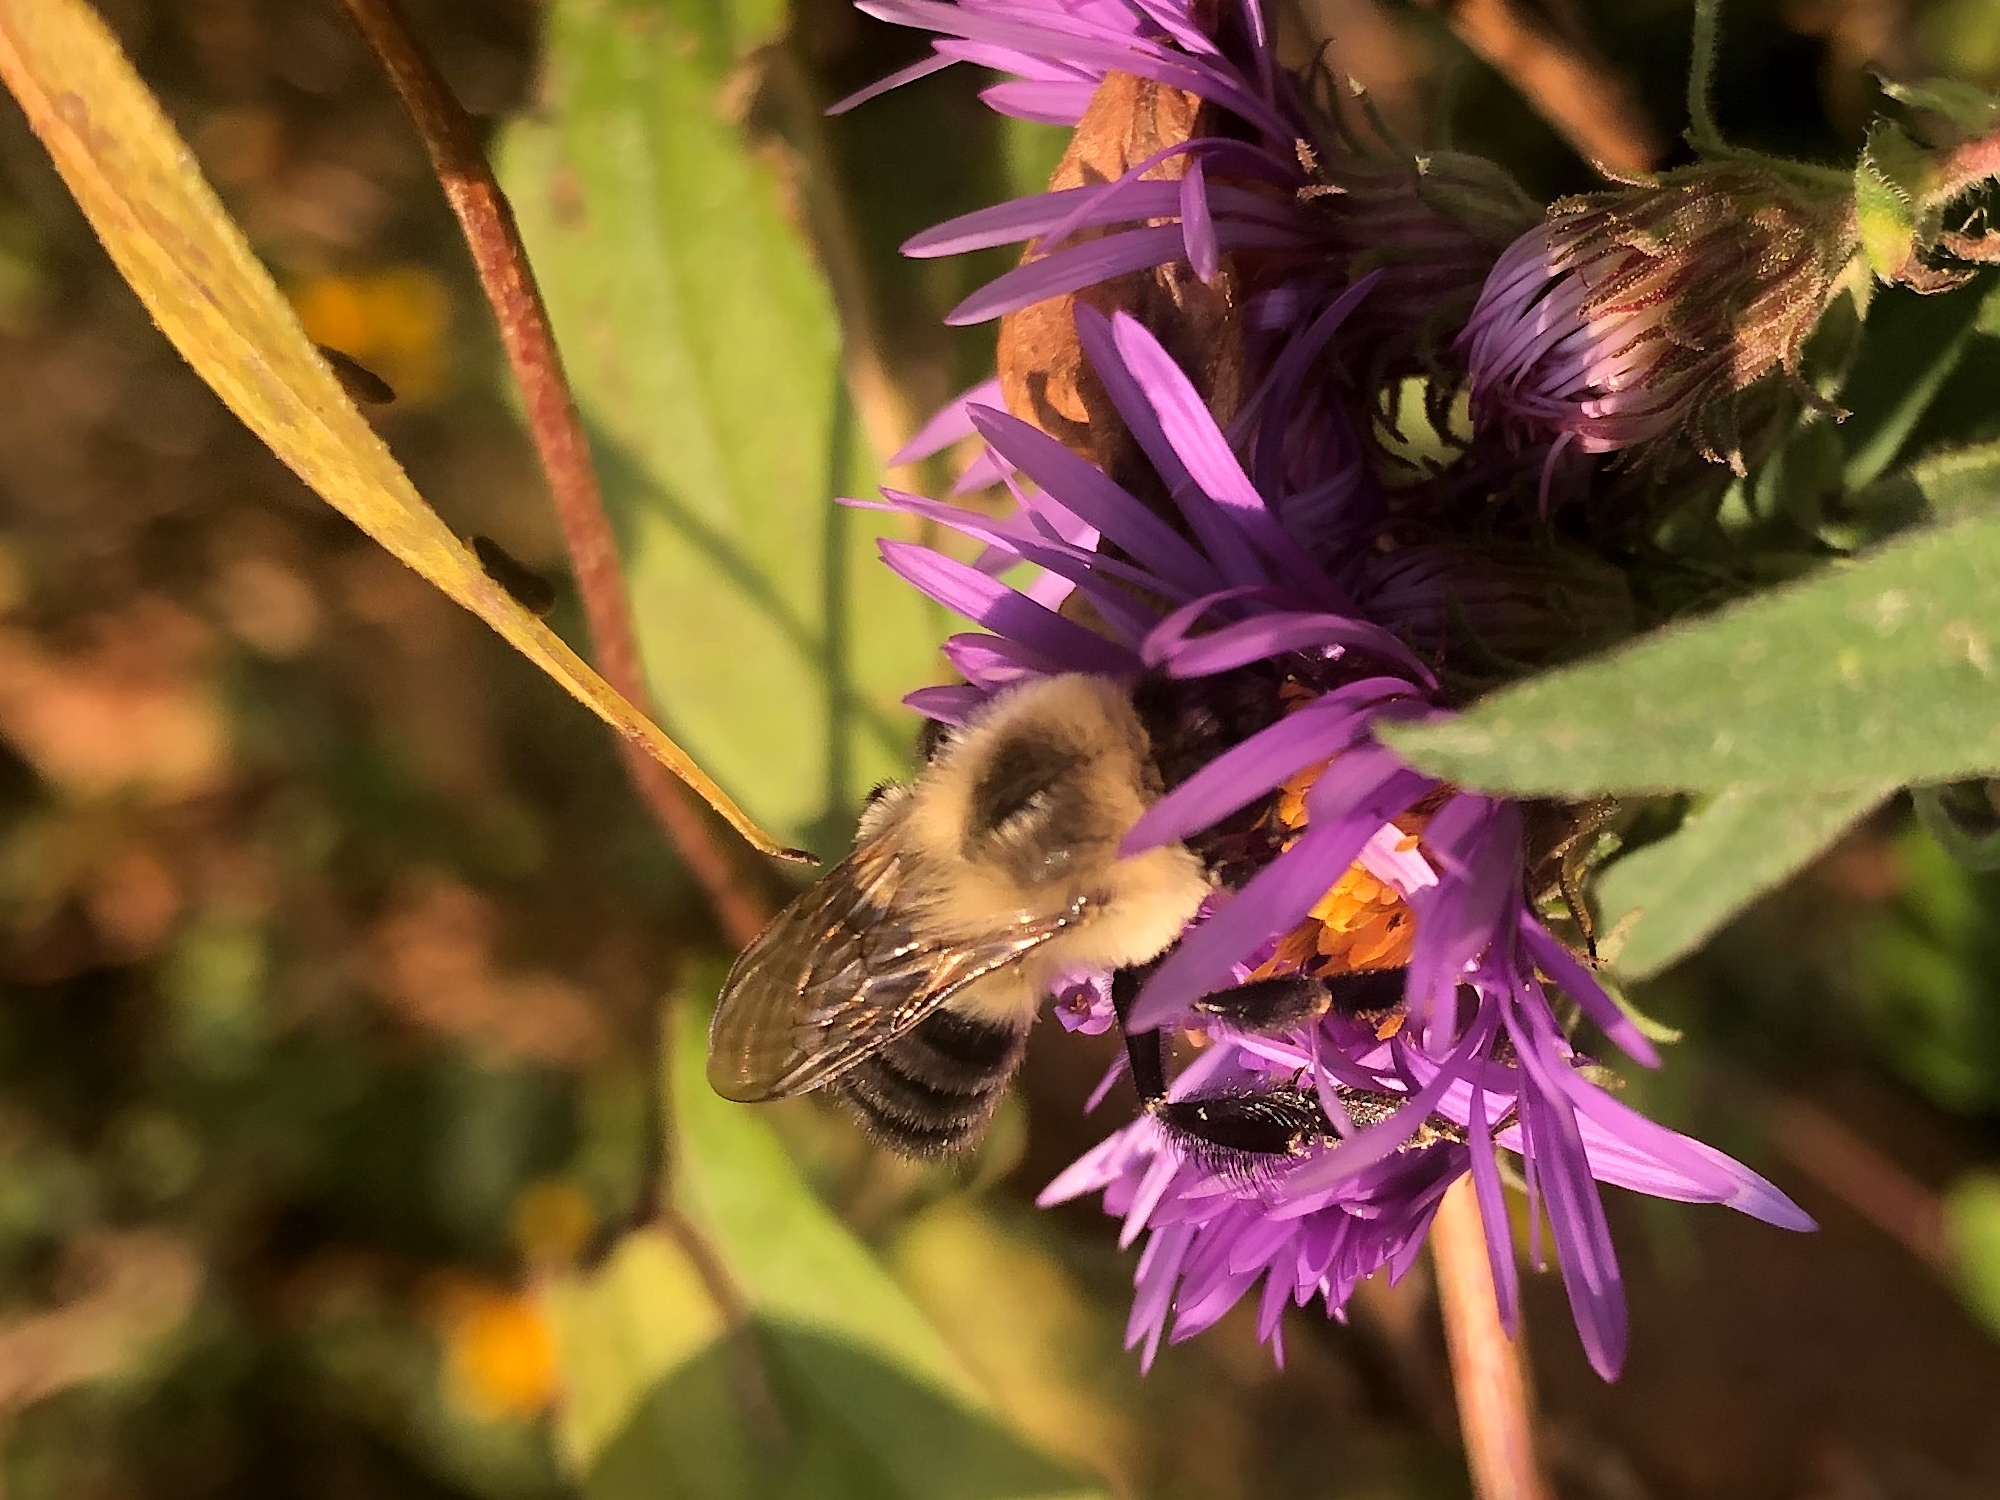 Bumblebee on Aster on September 25, 2020.